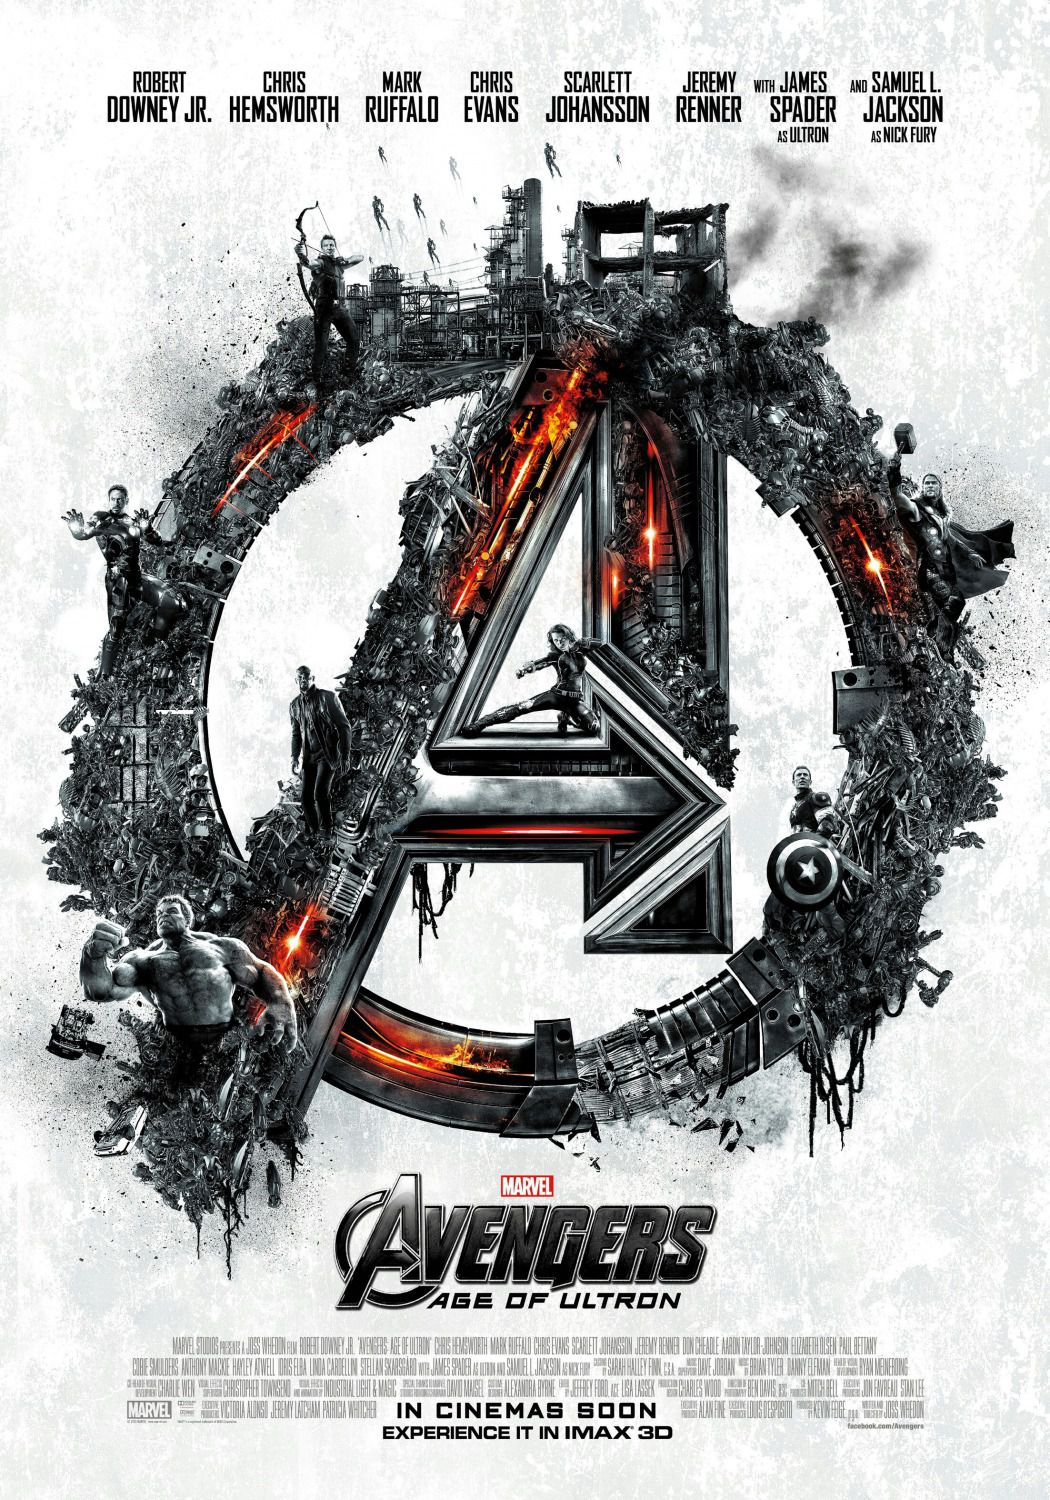 Avengers 2 - Age of Ultron . poster logo